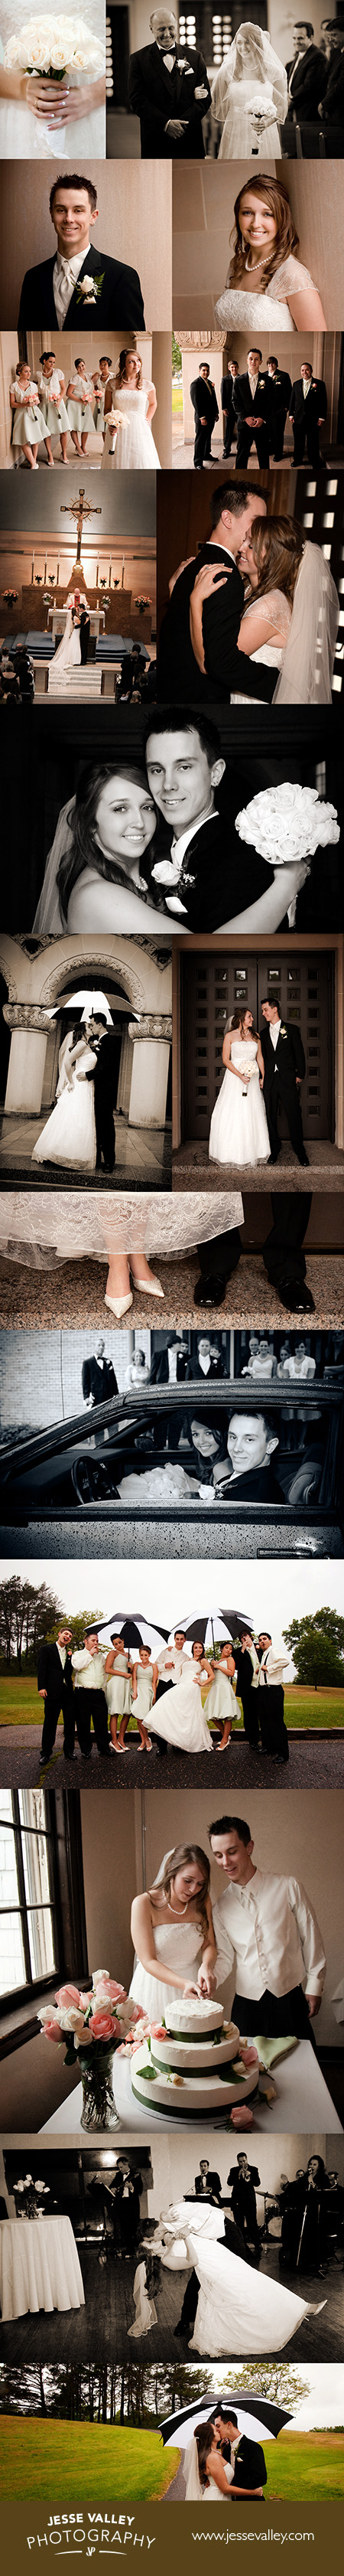 weddingblog